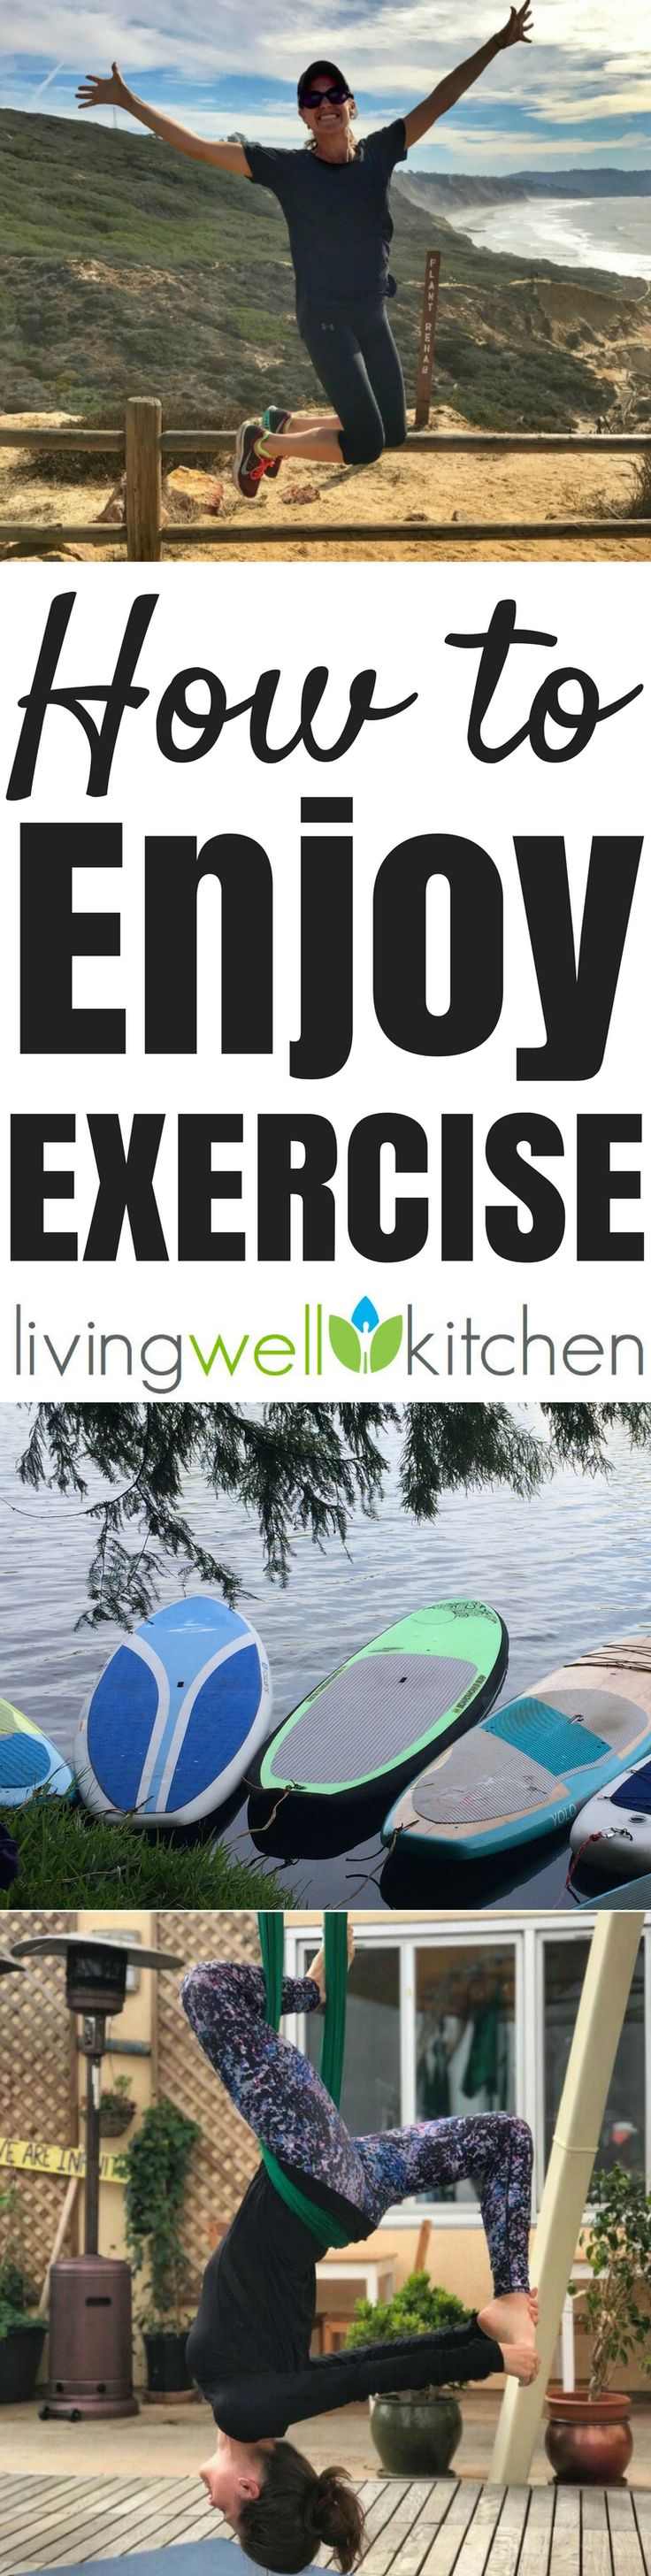 5 Tips for How to Enjoy Exercise from @memeinge, so it doesn't feel like something you are forced to do in life. Ideas to help you enjoy moving your body for the fun of it, not because you are 'supposed to workout'. Joyful movement is the best for living in a world of loving exercise